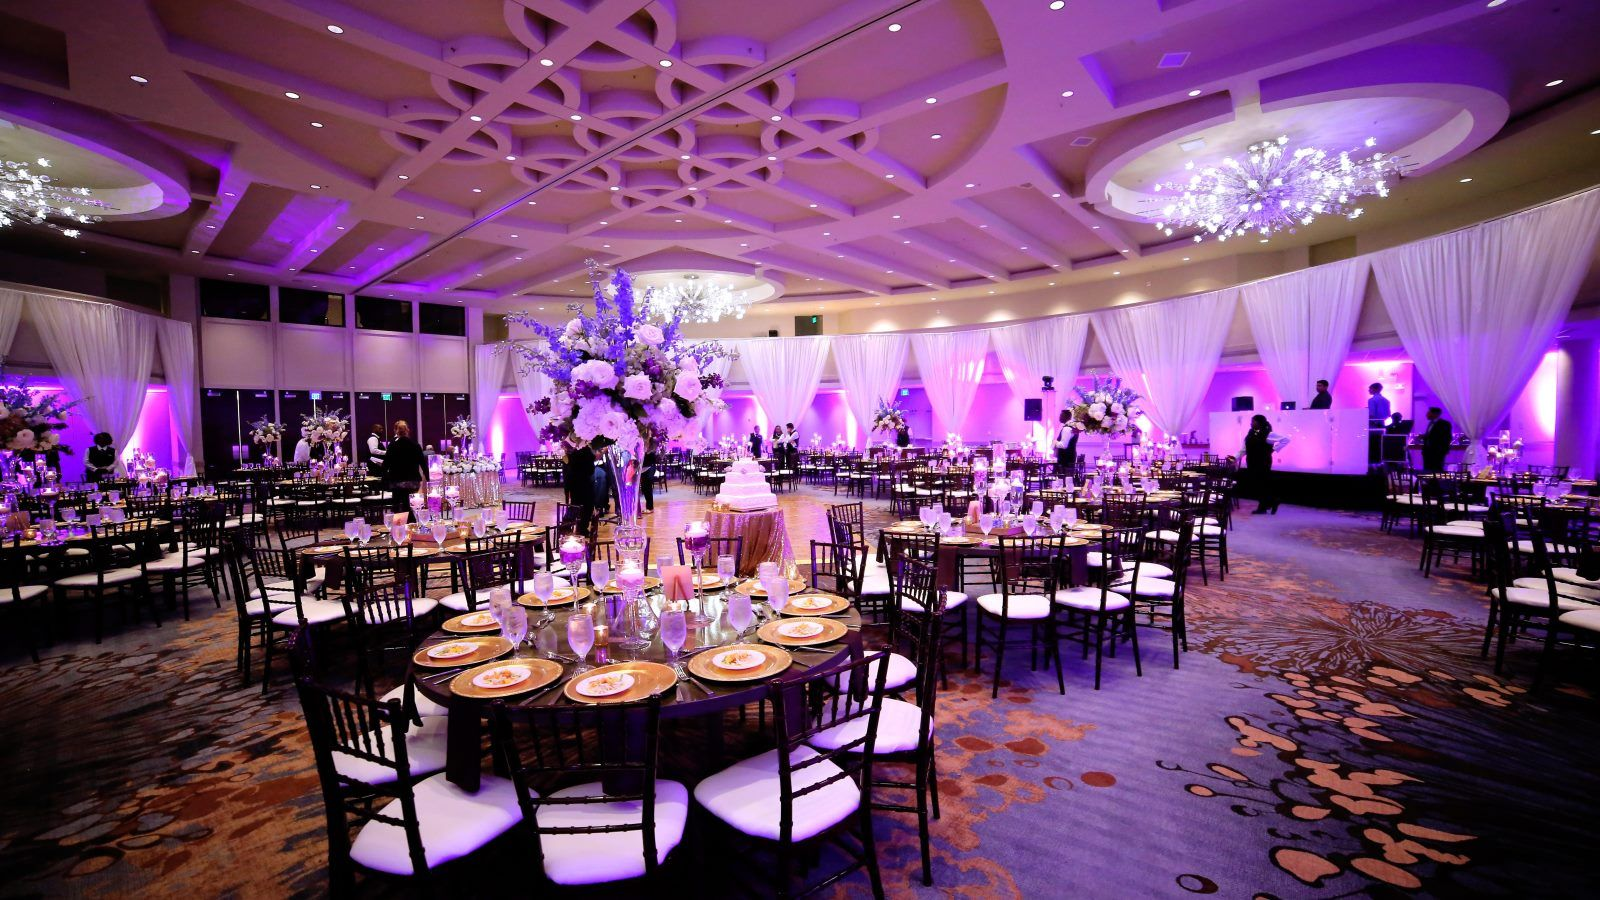 Wedding reception venues images wedding dress for Places to have receptions for weddings